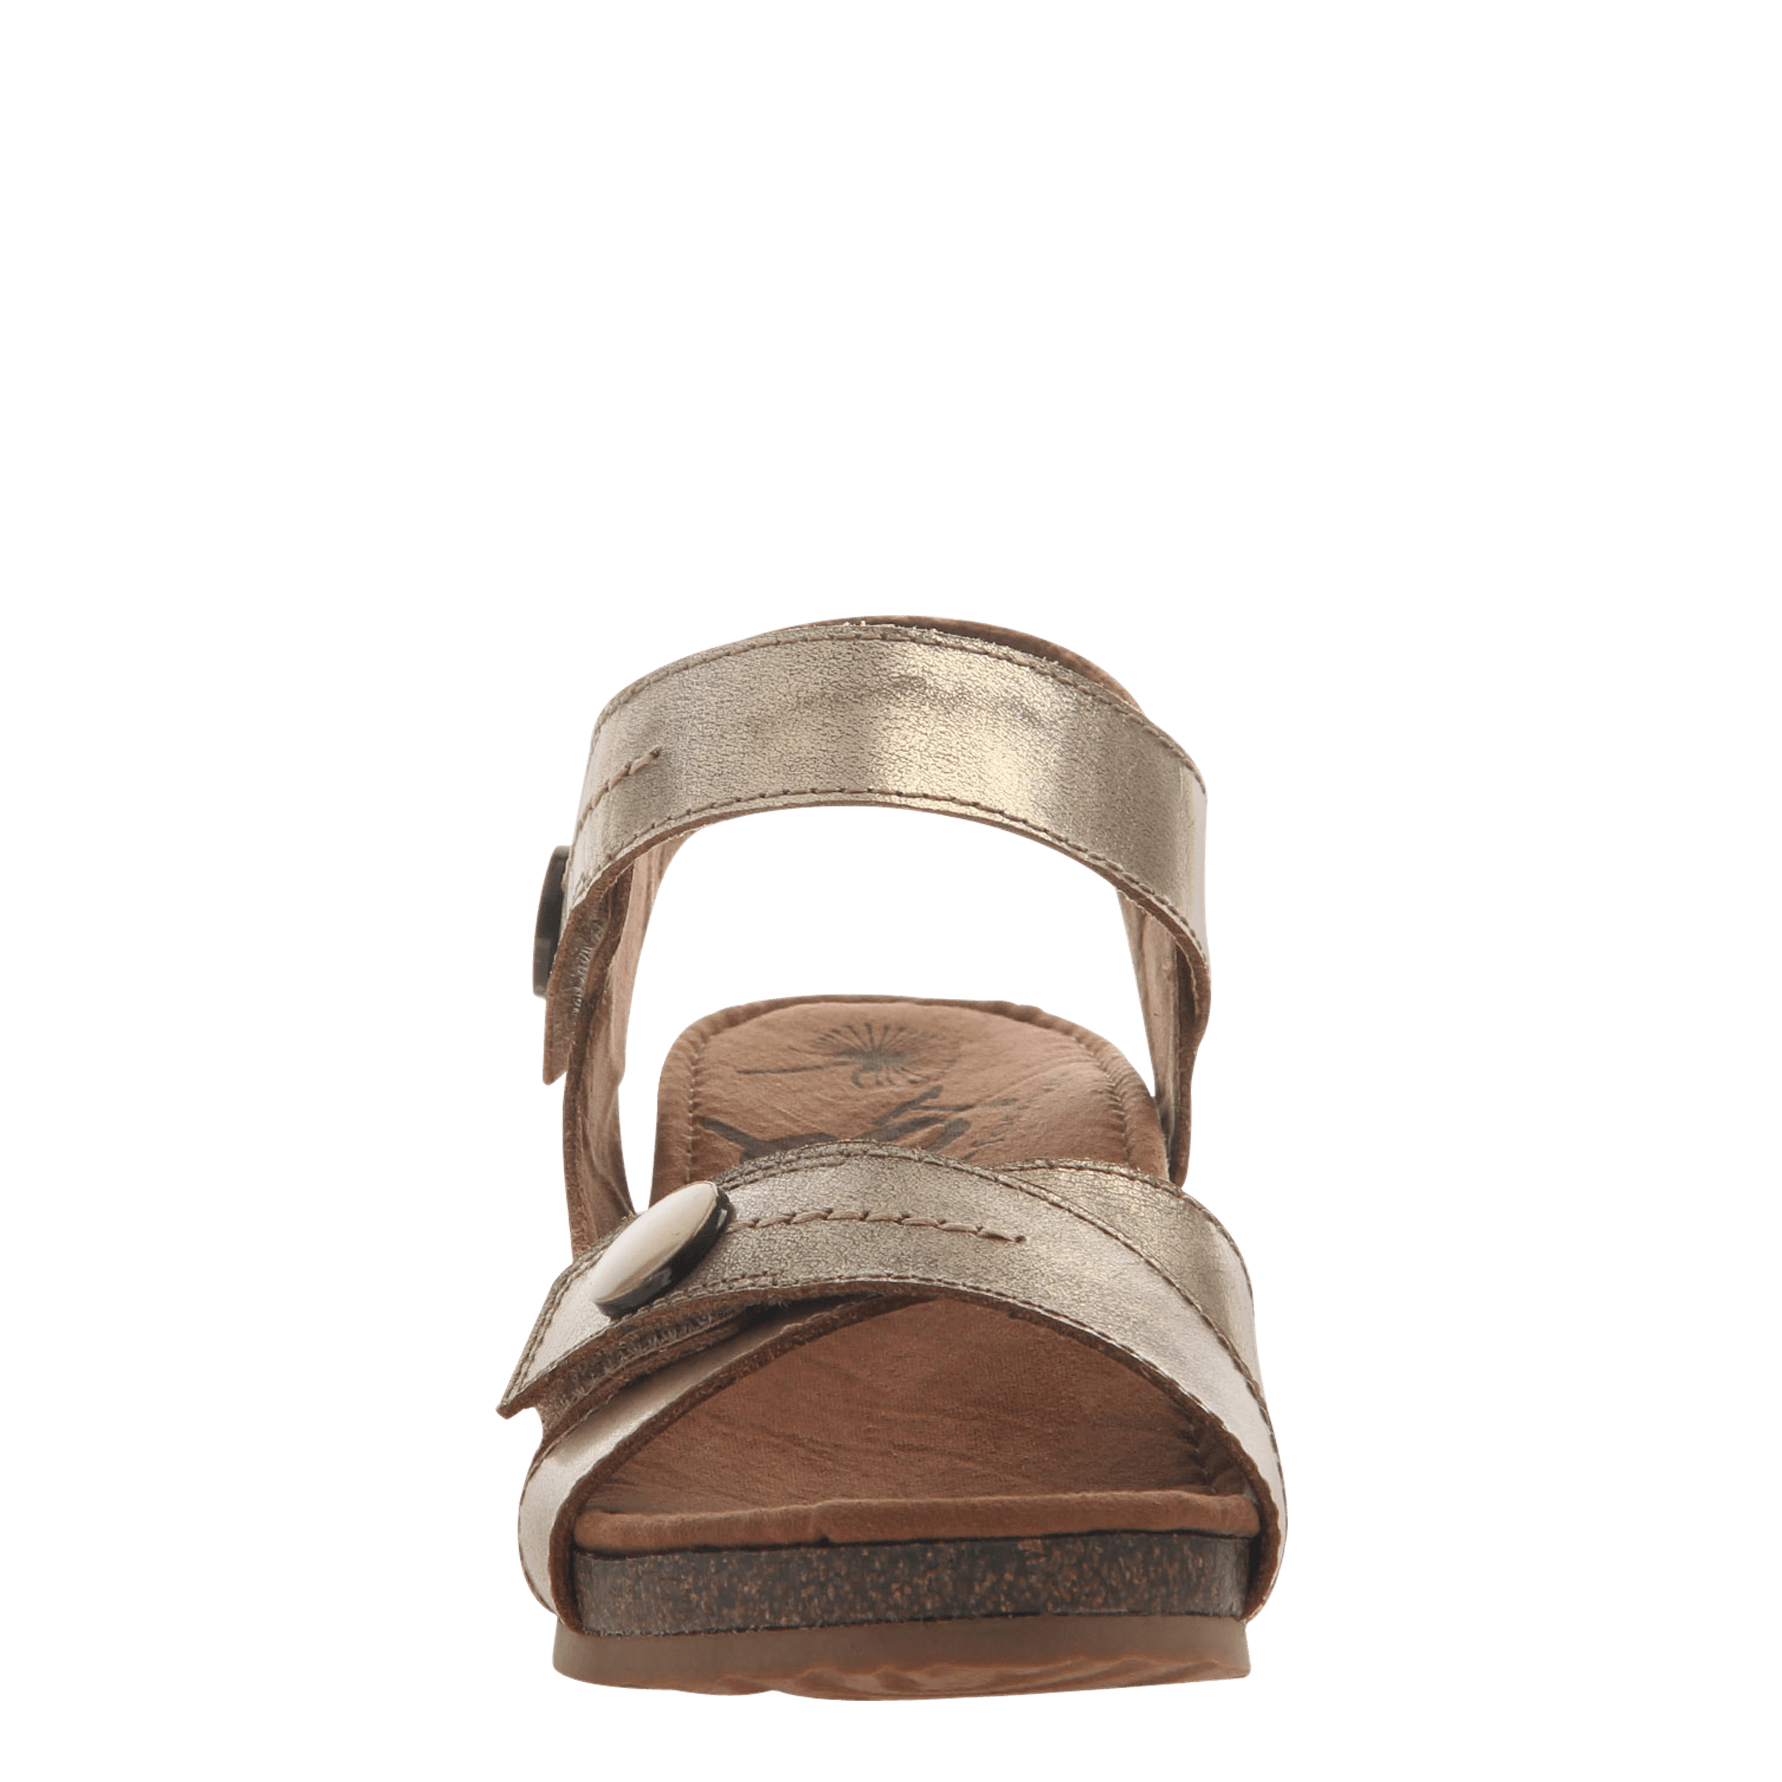 ae109f032ce8 Womens wedge sandal Sandey in Gold front view